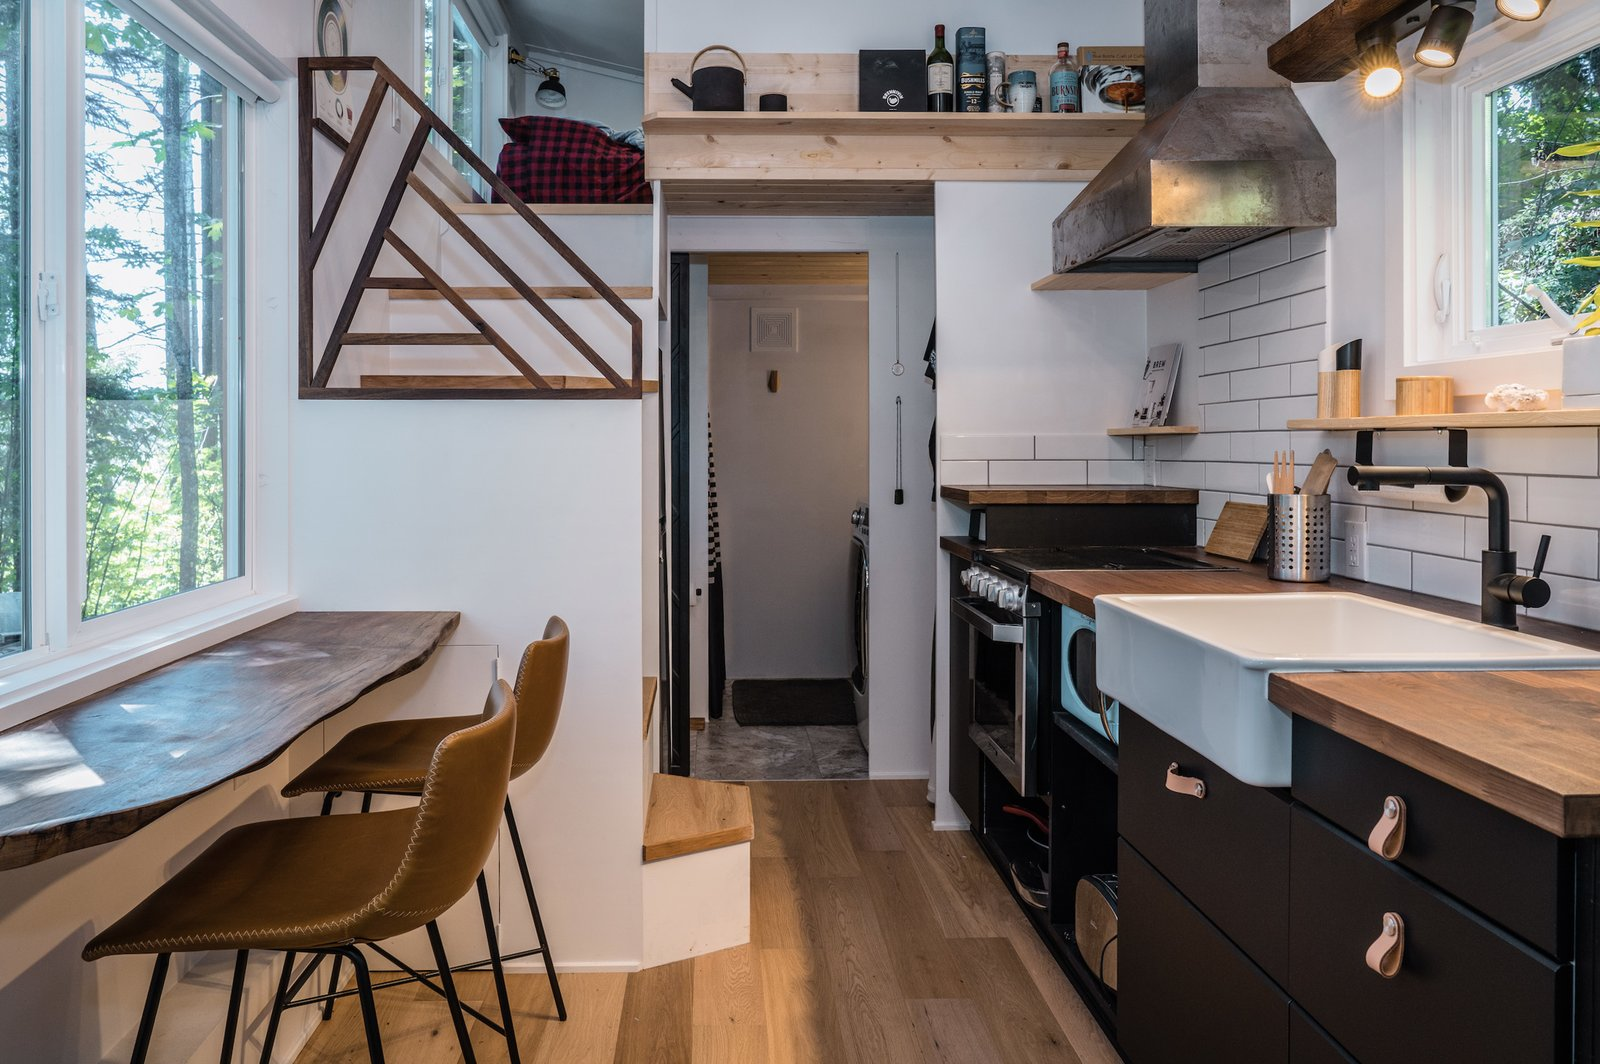 A closer look at the kitchen area, where leather cabinet pulls and open shelving complement wood counters and a custom stair railing. Stephen's inspirational tea pot and mug sit along a shelf above the bathroom doorway.  Photo 5 of 11 in A Furnished Tiny Home With Japanese and Scandinavian Vibes Is Offered at $99K